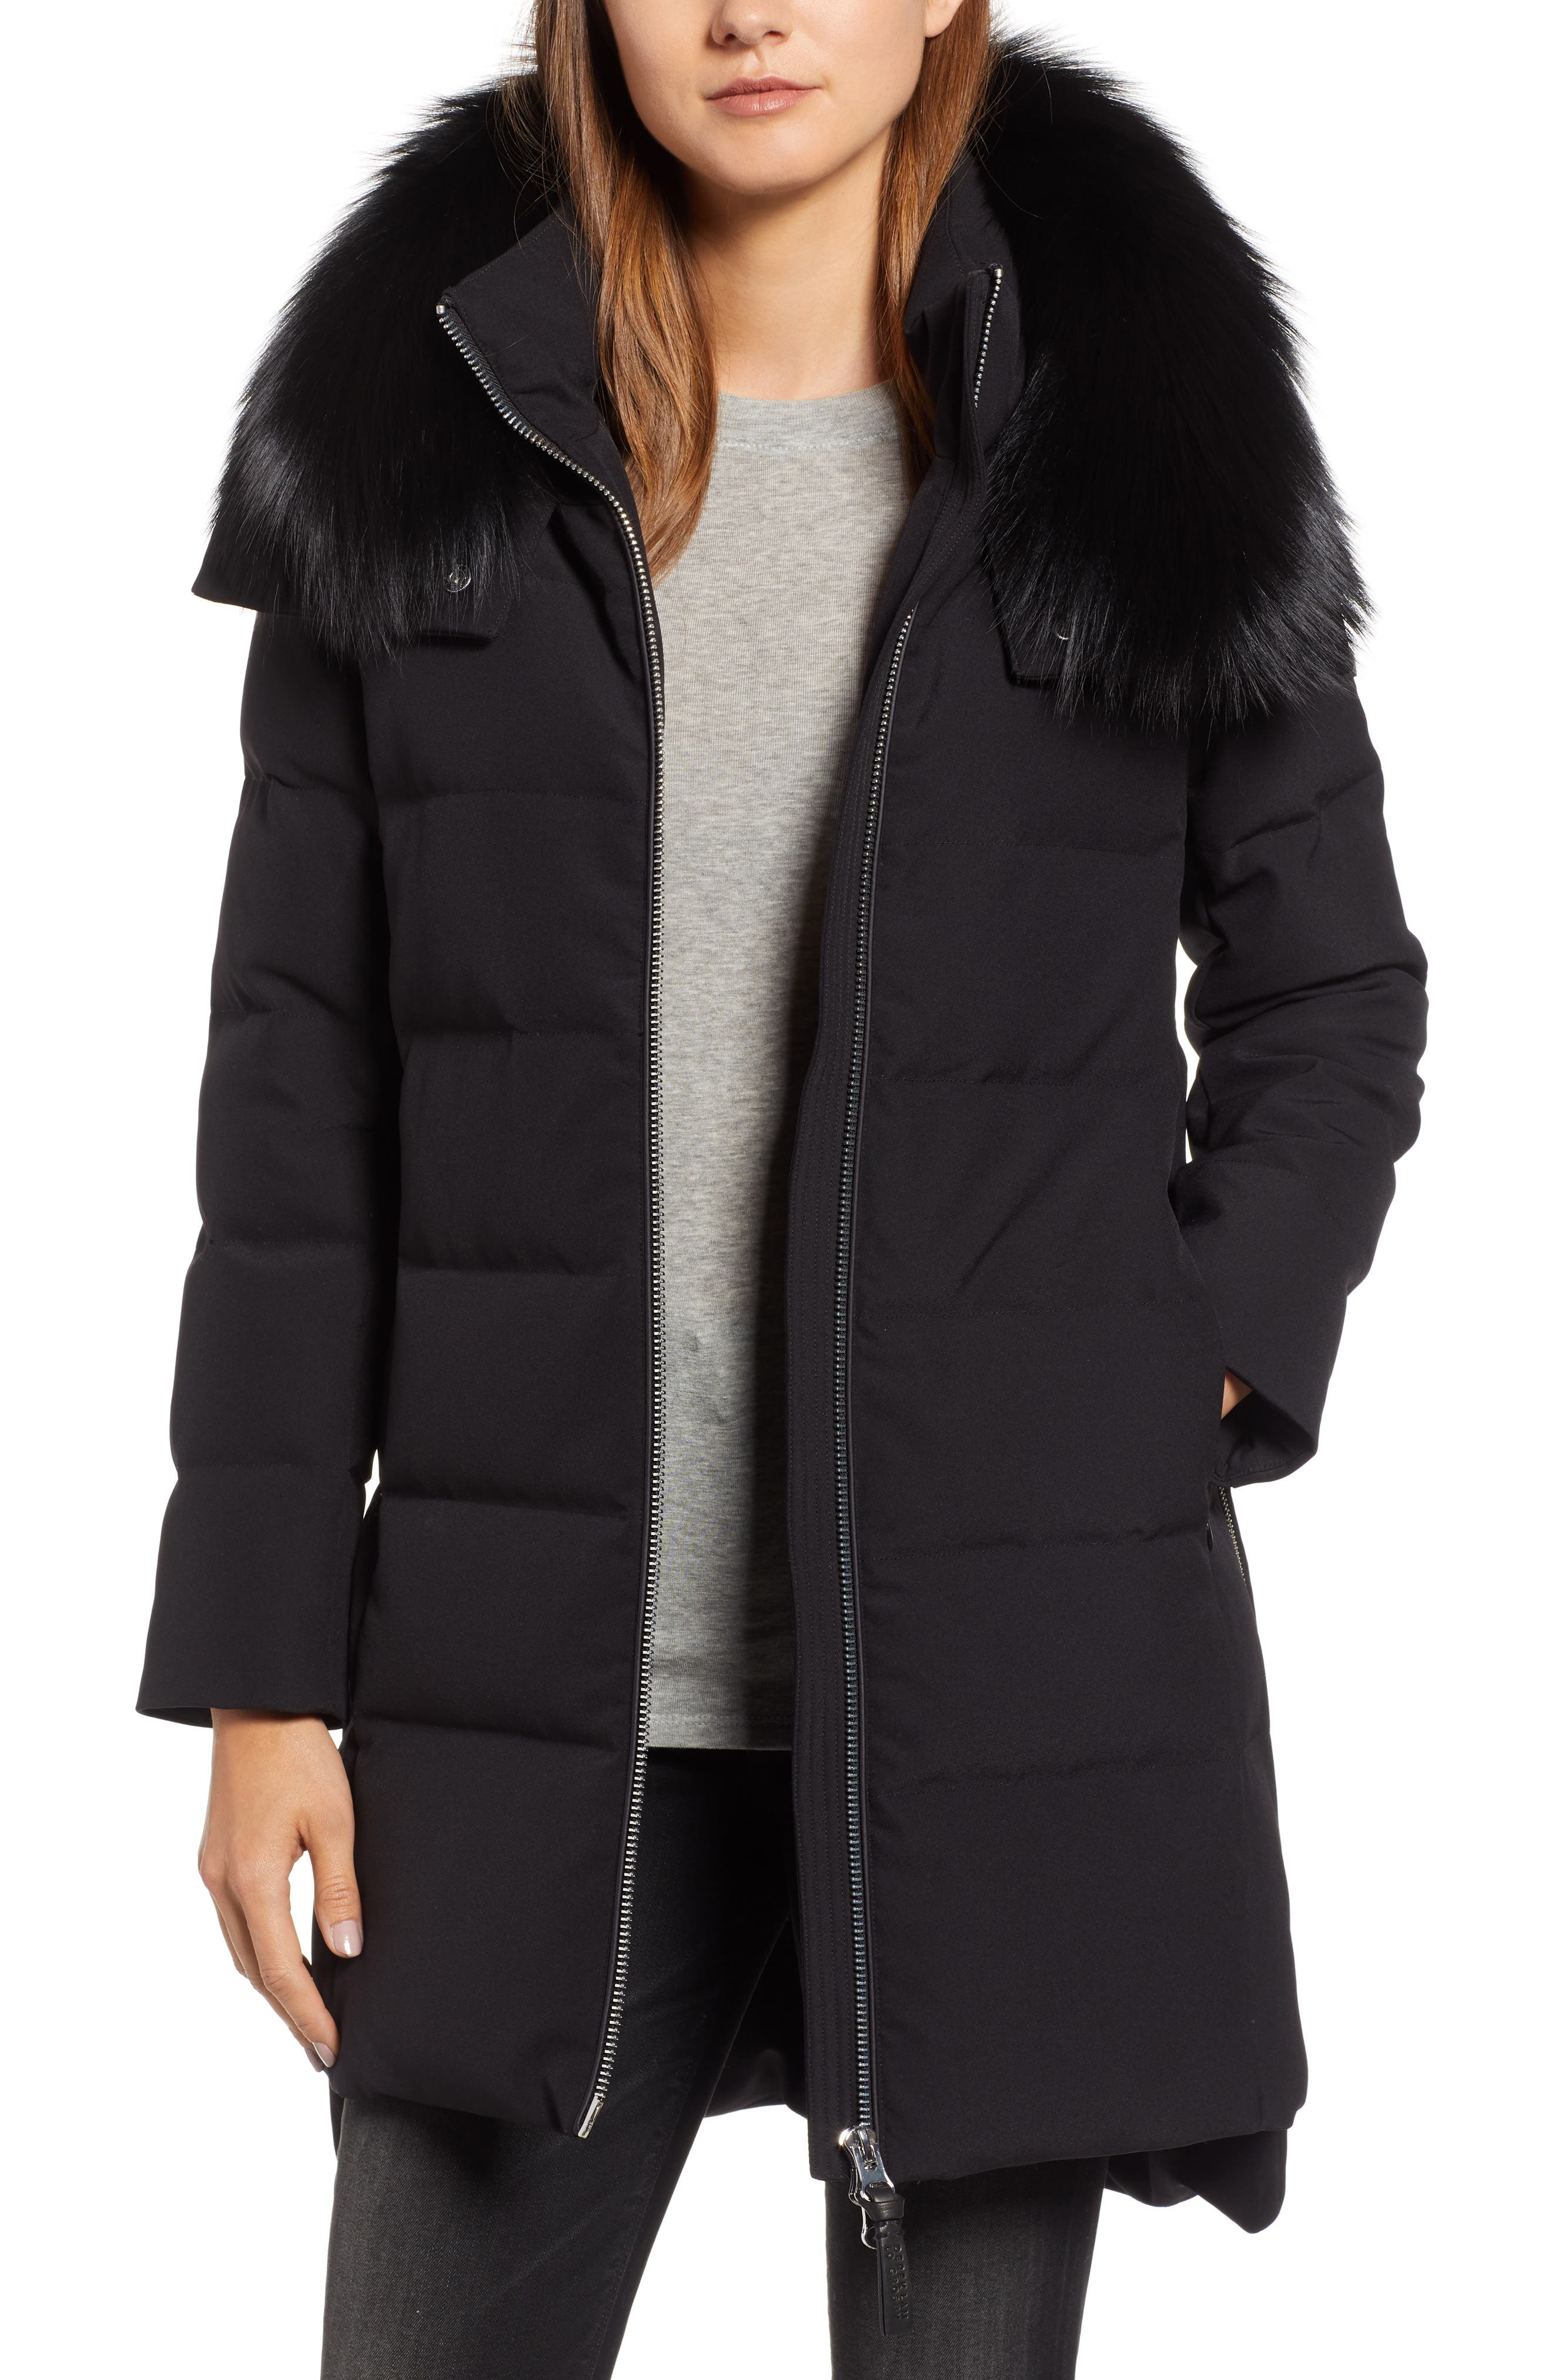 Derek Lam 10 Crosby Allover Stretch Down Coat With Genuine Fox Fur Trim